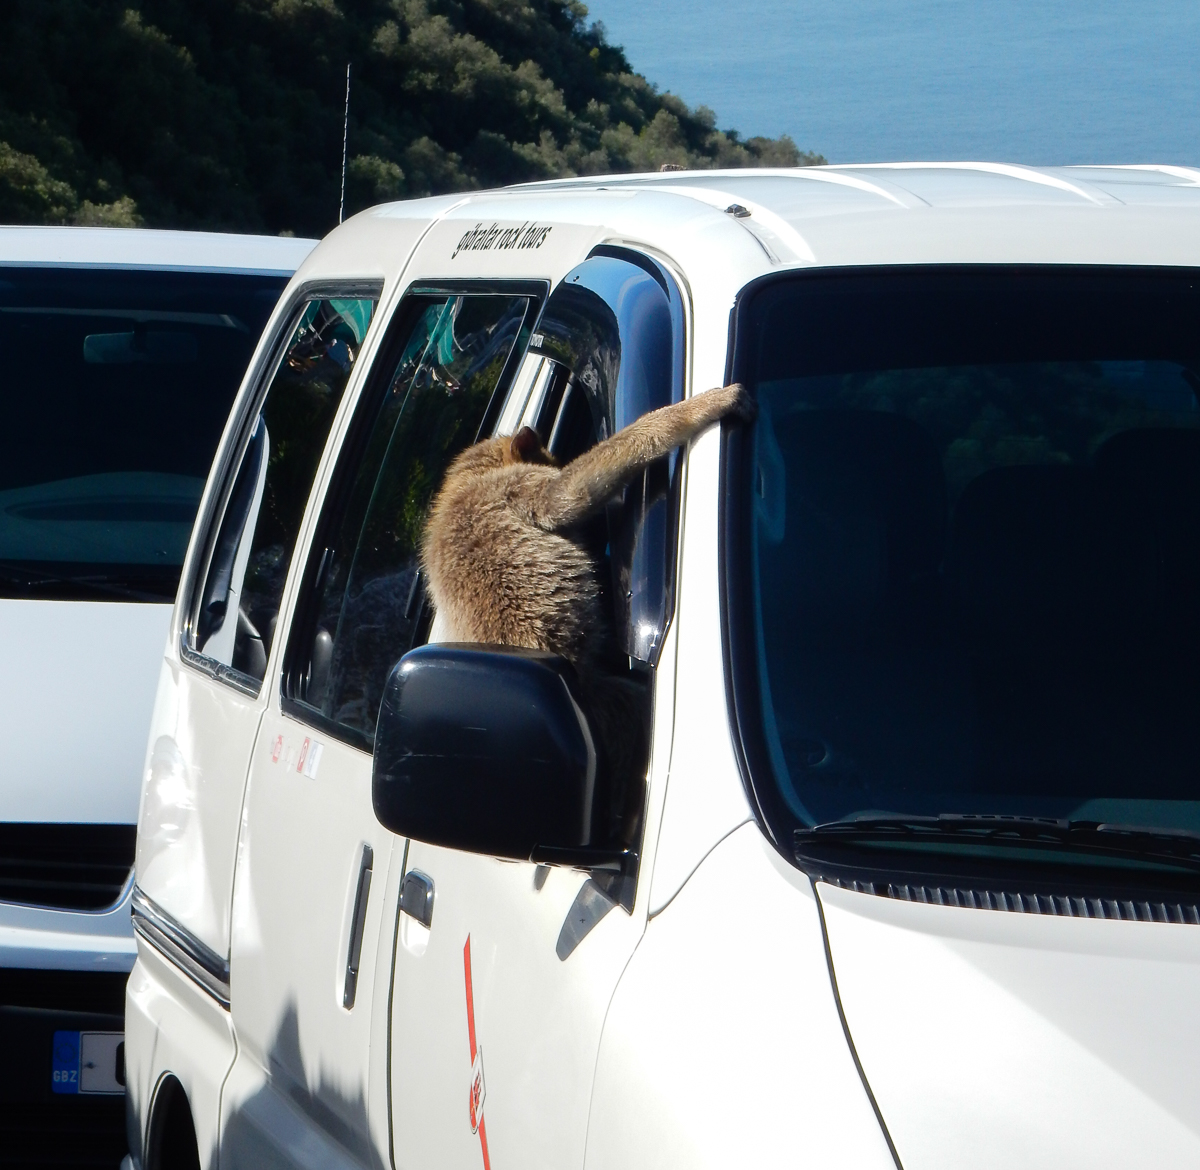 Wild monkeys climbing in the minibus in Gibraltar